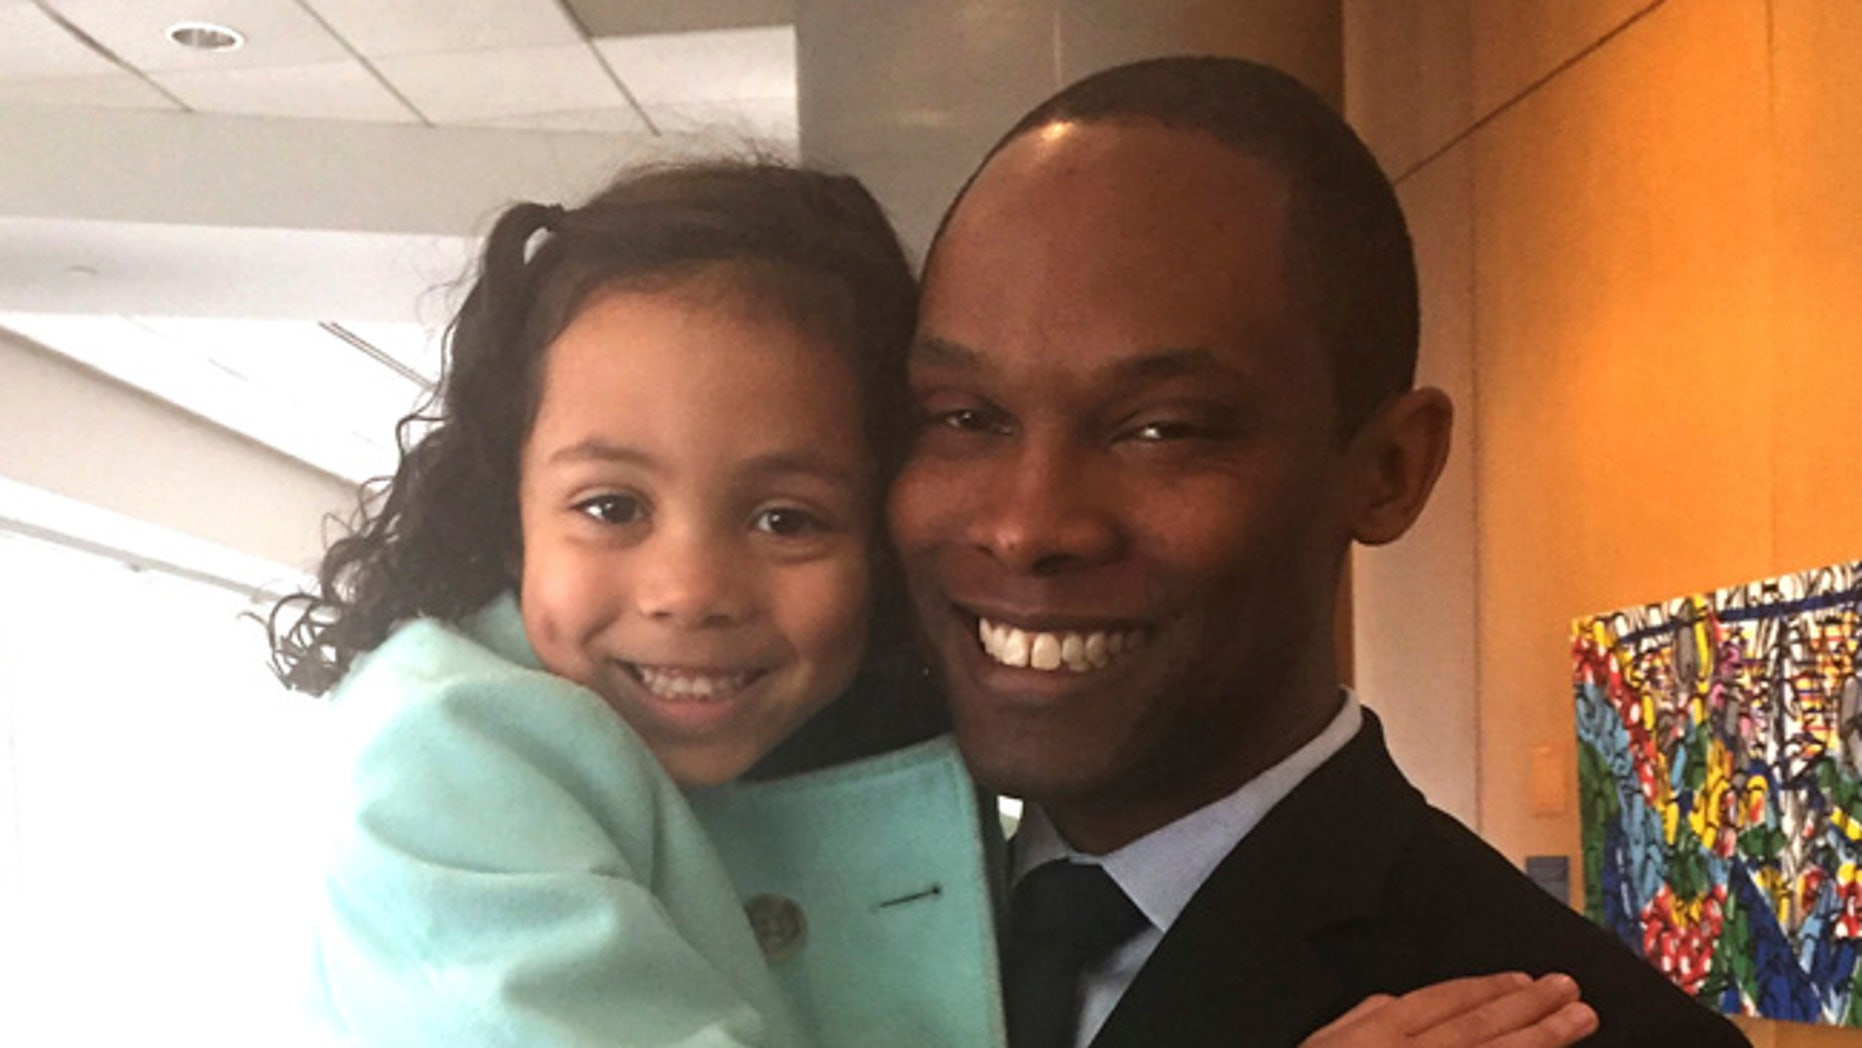 Ellie Ford, 5, is seen with her father, JR Ford, before their meeting with Education Secretary Betsy DeVos in Washington. Families of transgender students came away from a meeting with DeVos saying that she was receptive to their concerns.